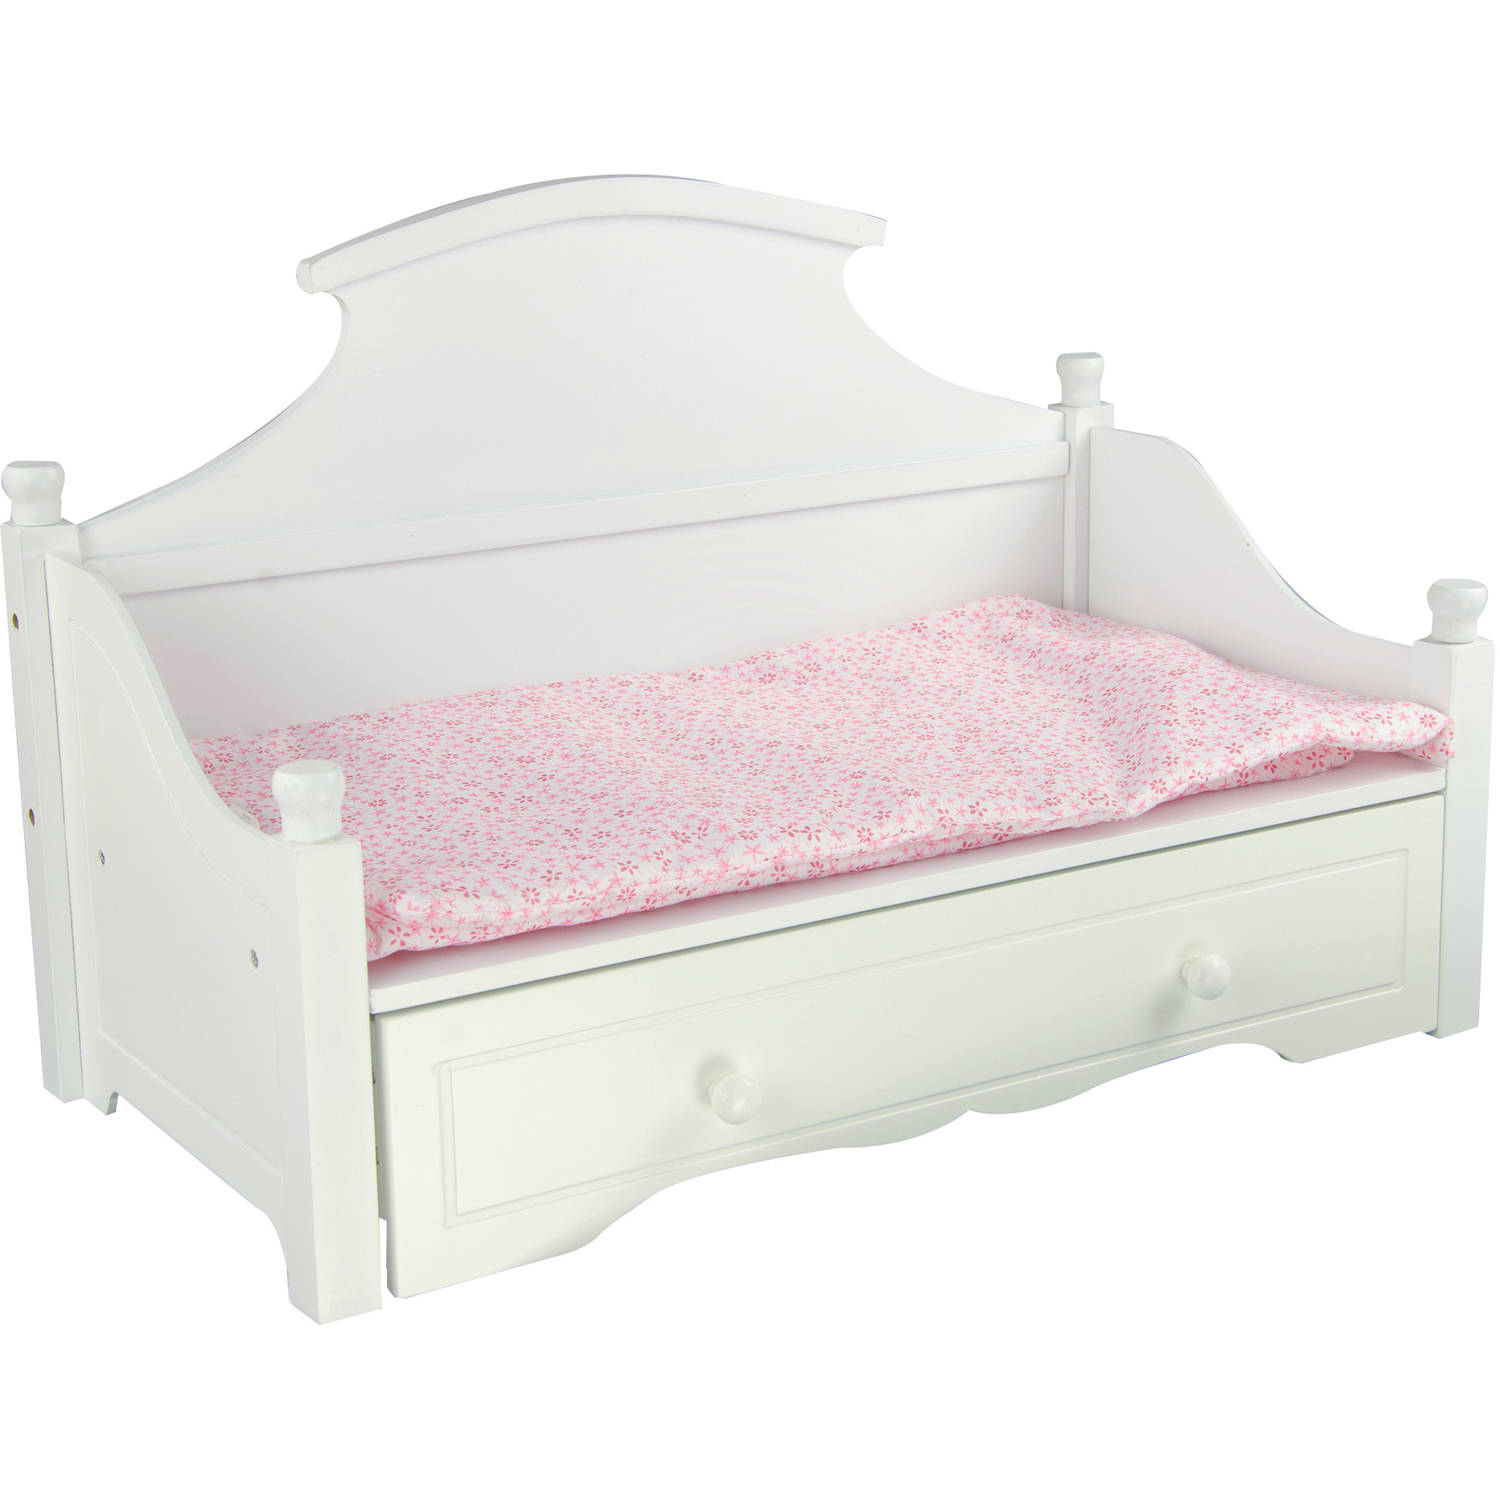 Olivia's Little World Princess White Trundle Bed with Pink Floral Mettress Wooden 18 inch Doll Furniture by Teamson